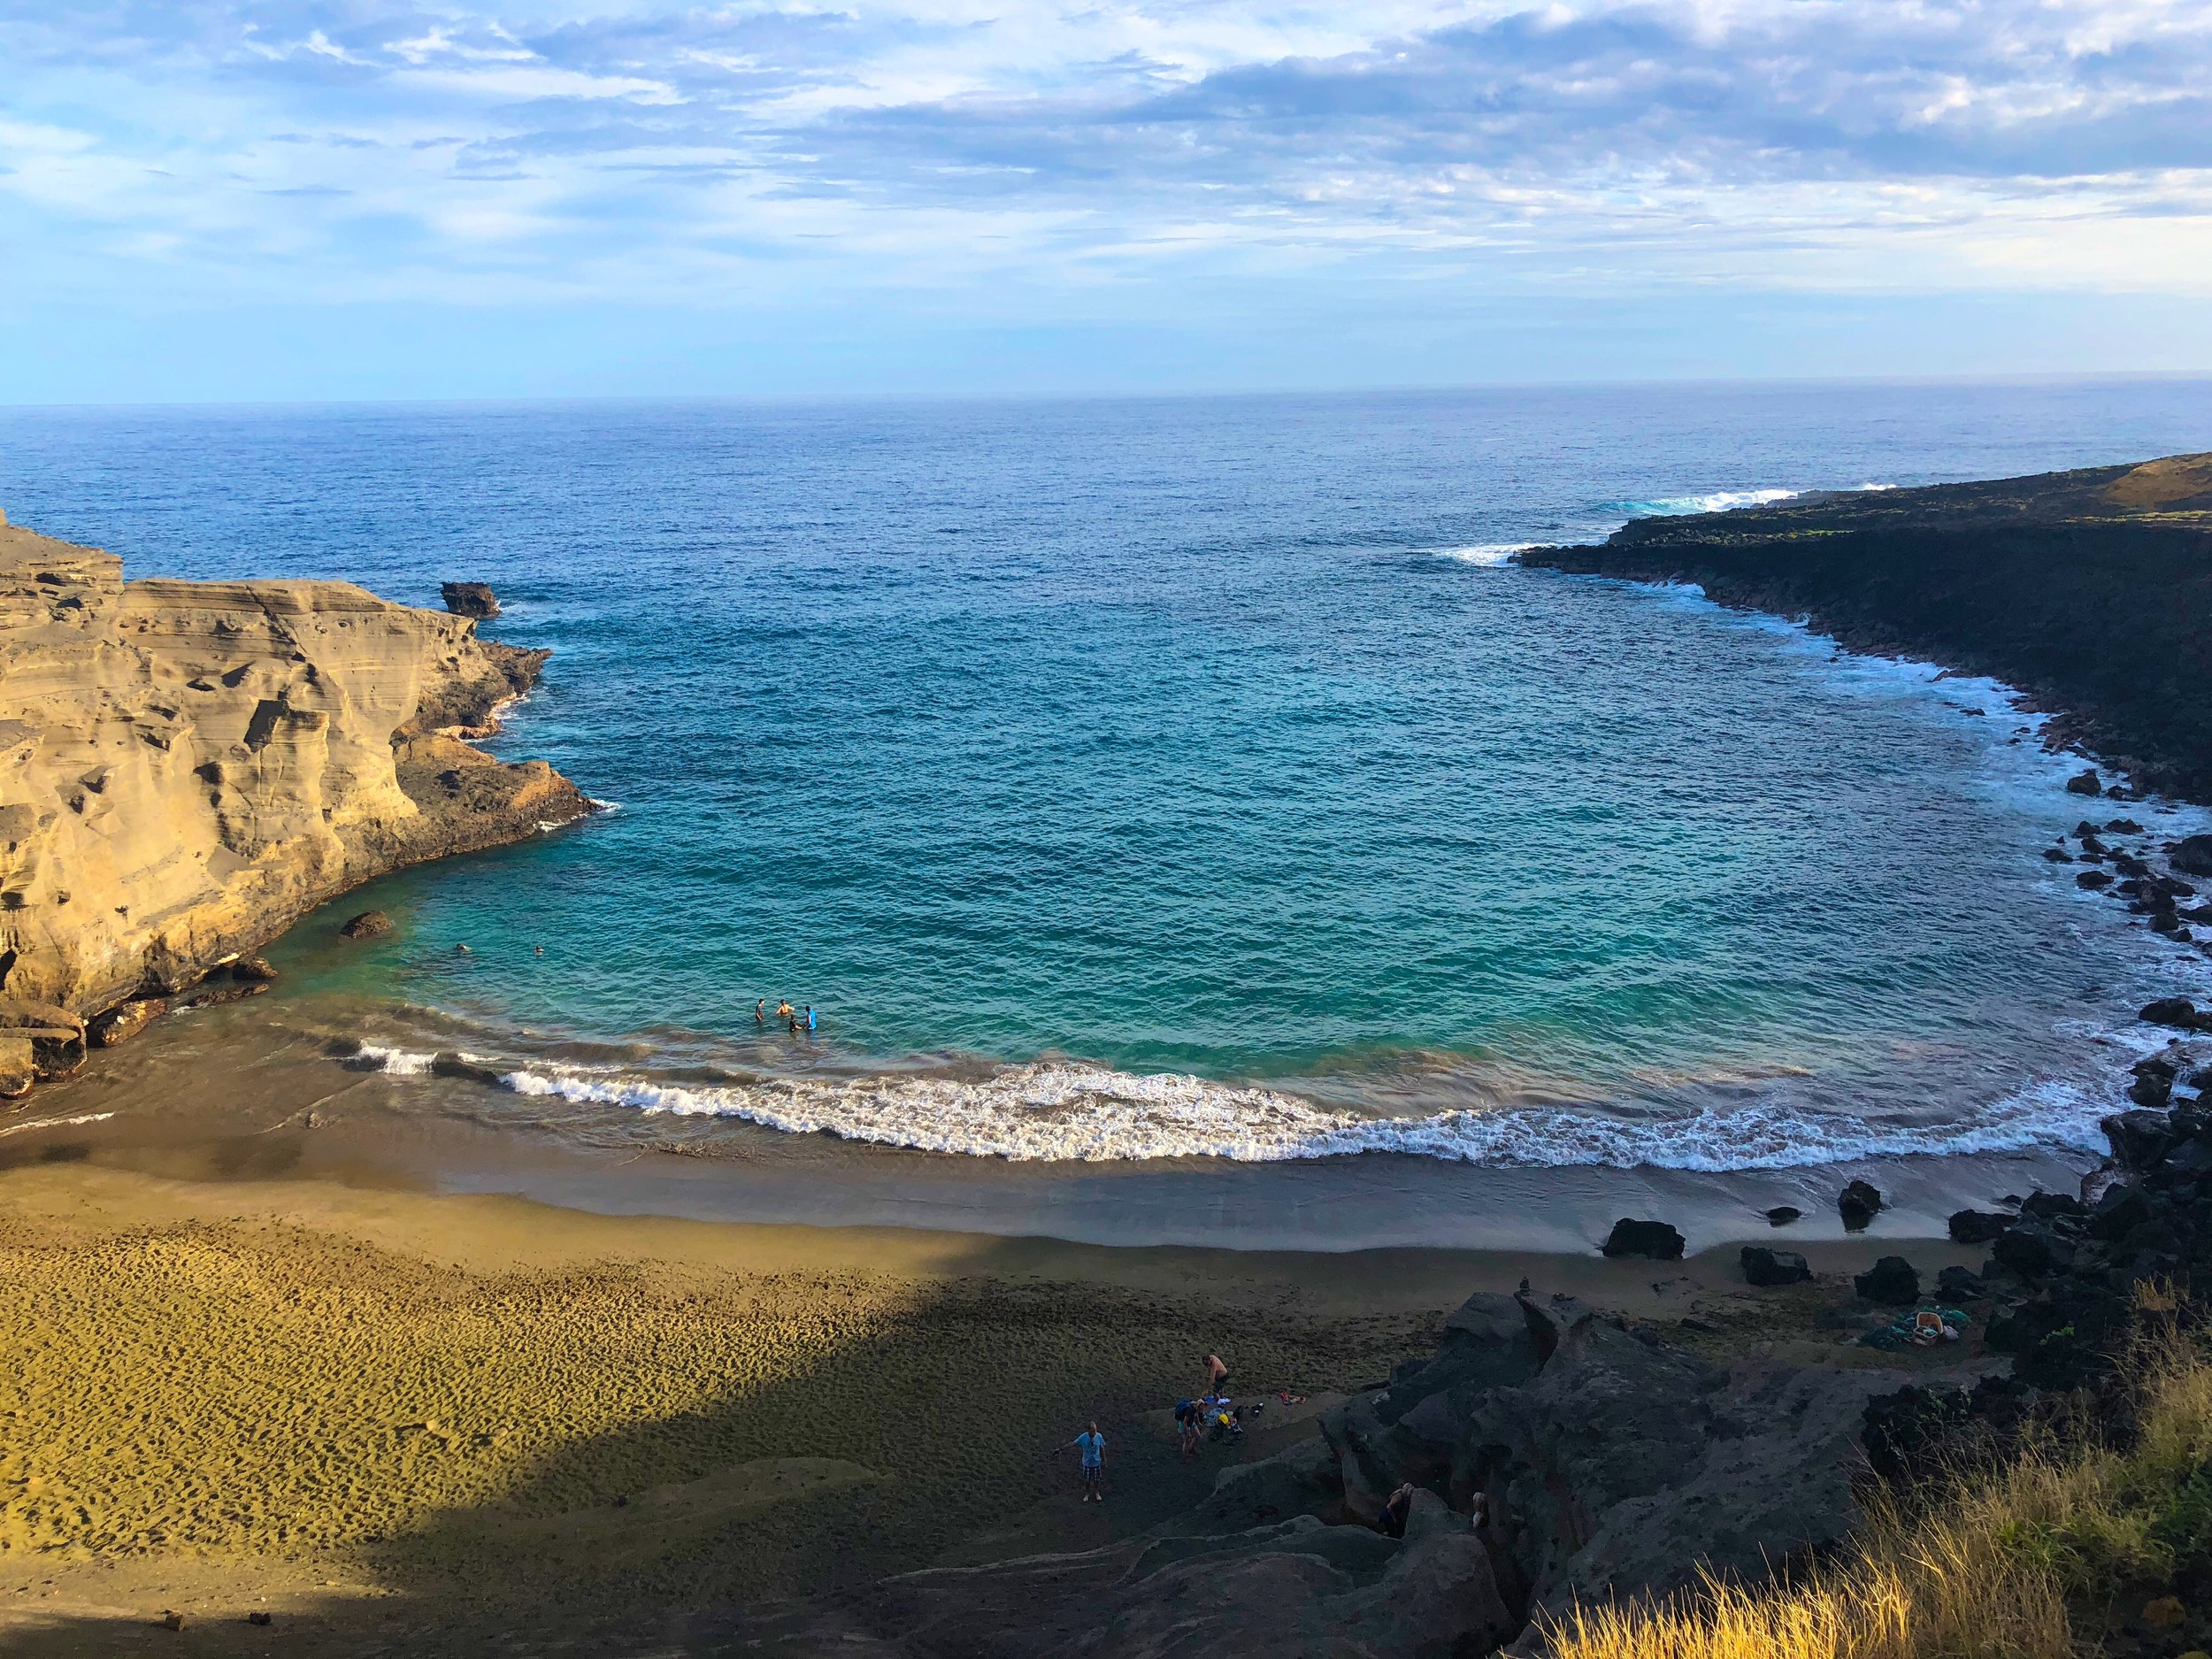 The view of the Green Sand Beach from the top of the steep ridge.